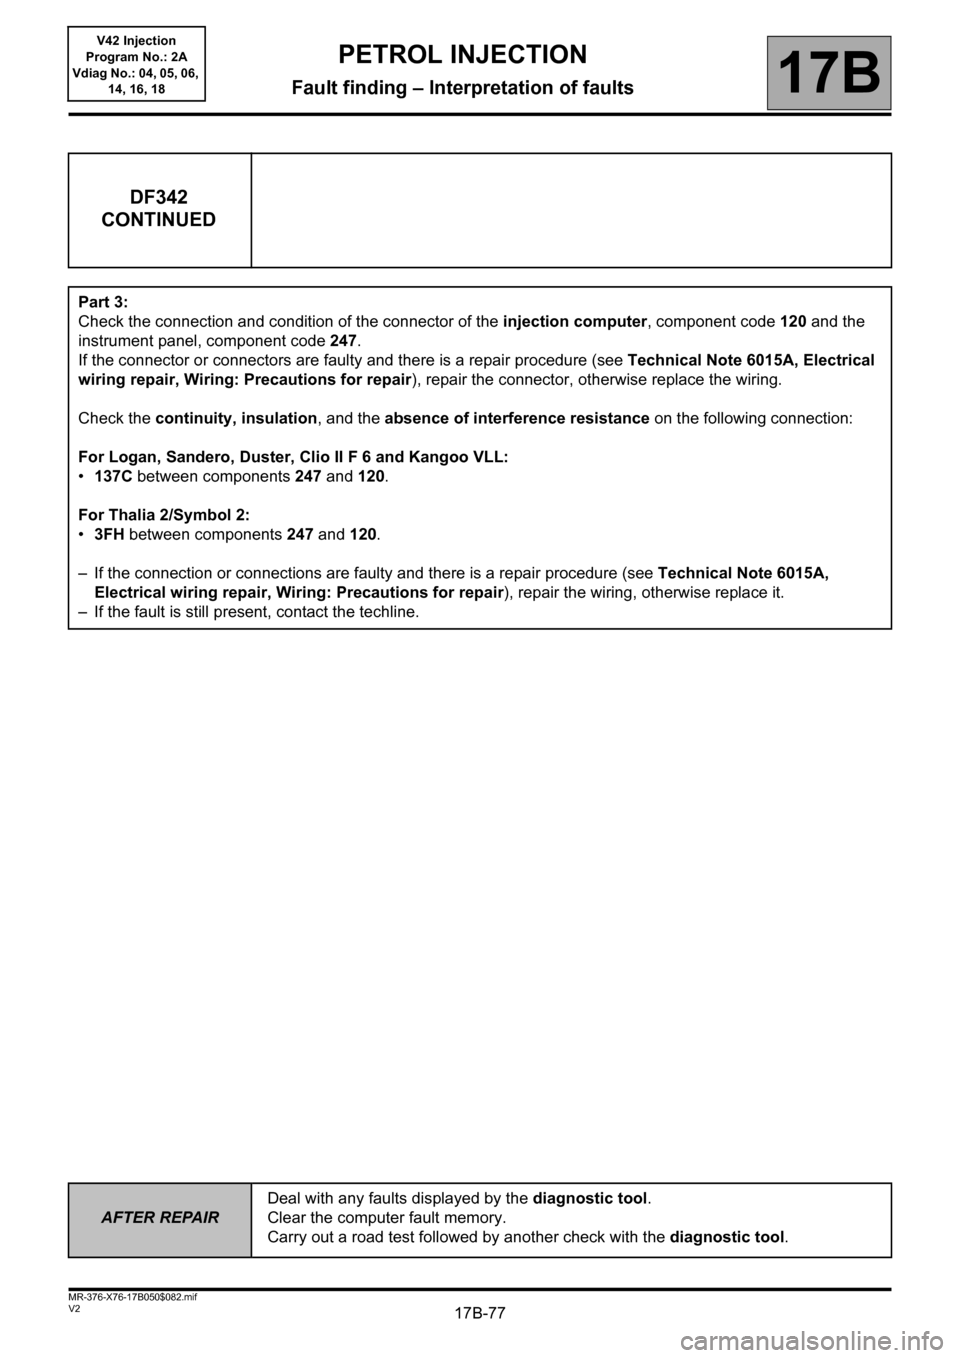 RENAULT KANGOO 2013 X61 / 2.G Petrol V42 Injection Workshop Manual, Page 77